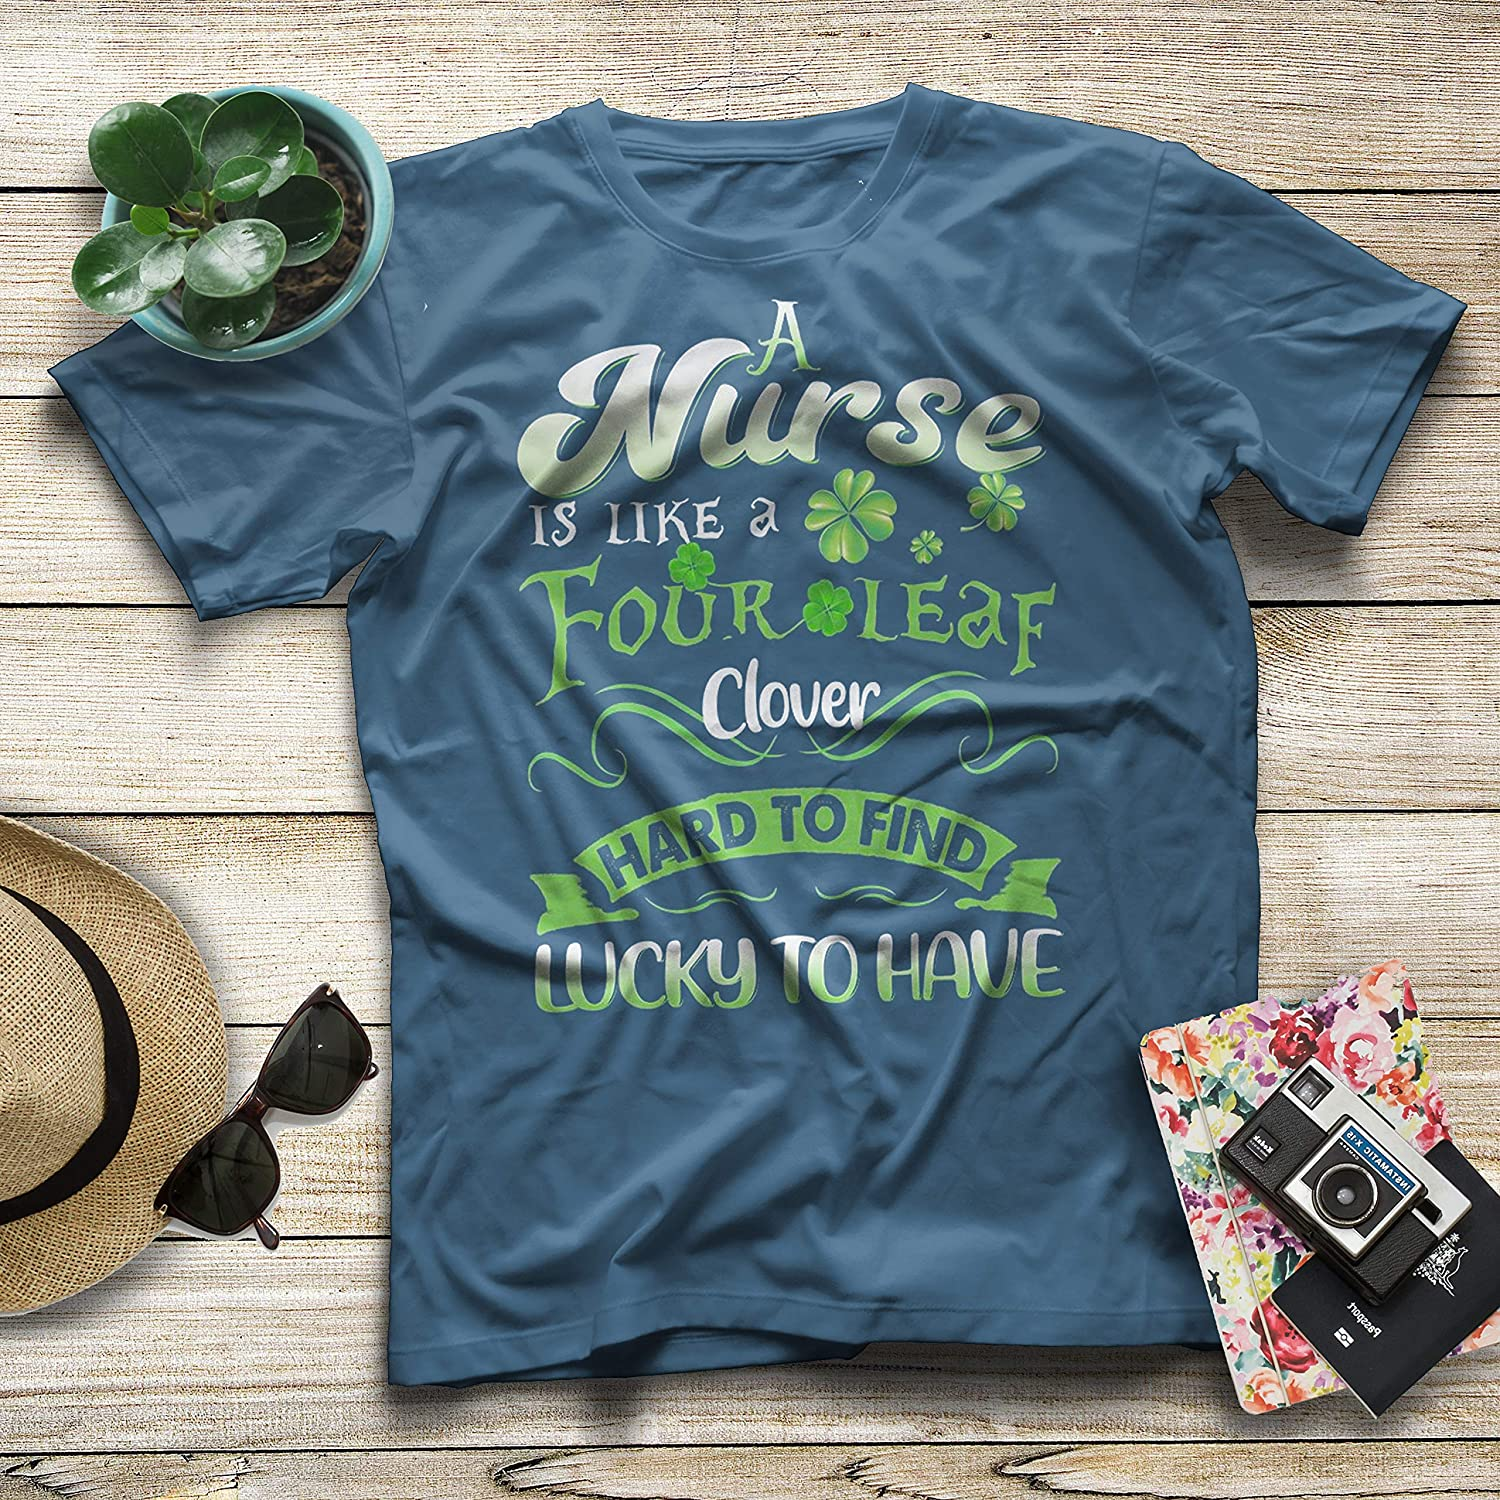 A Nurse is Like A Four Leaf Clover Hard to Find Lucky to Have Nurse T-Shirt for Mom